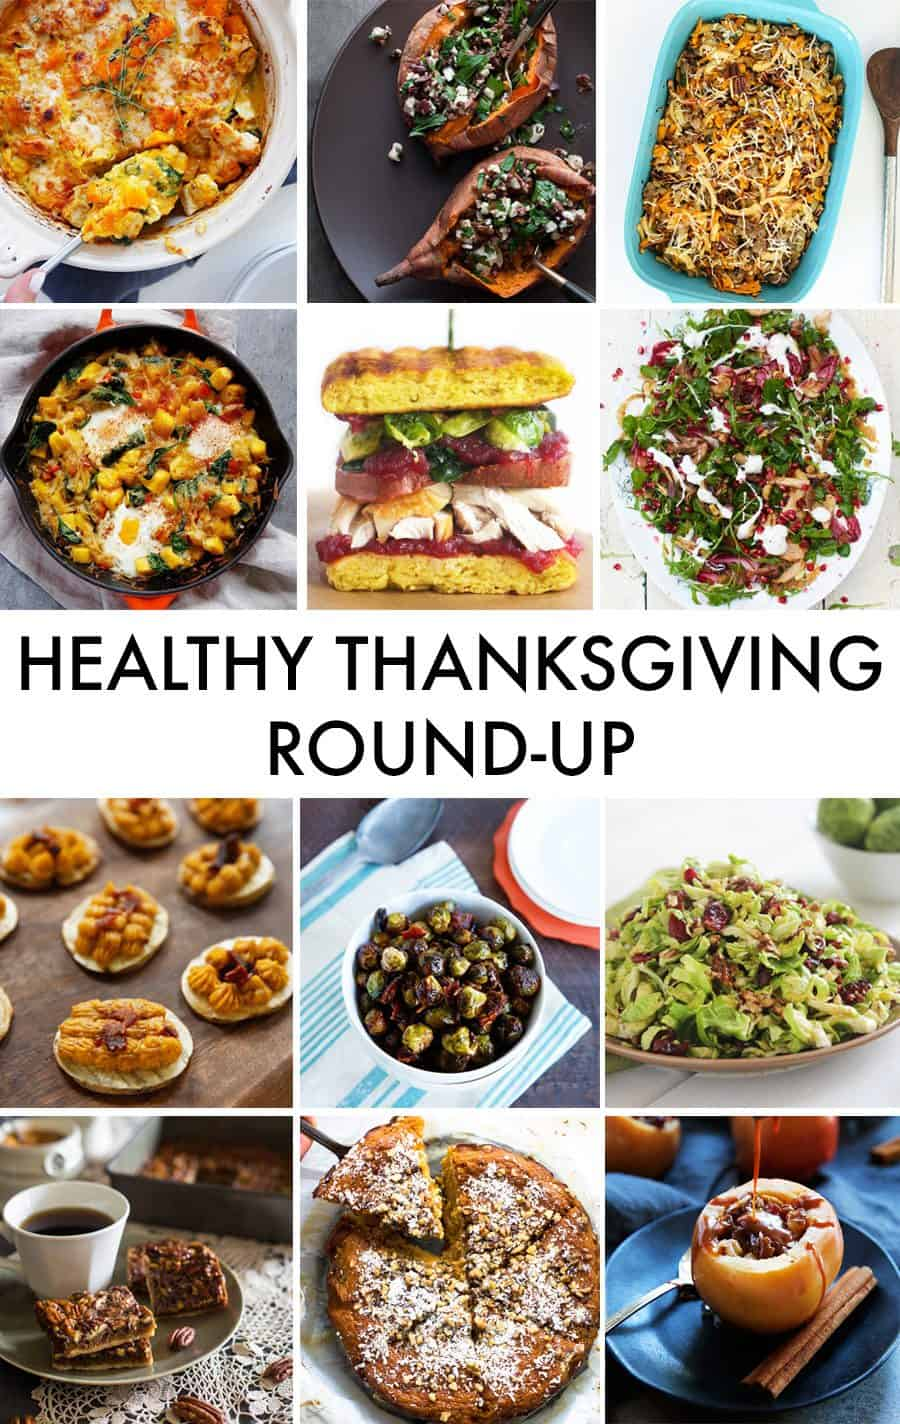 Healthy Thanksgiving Round-Up